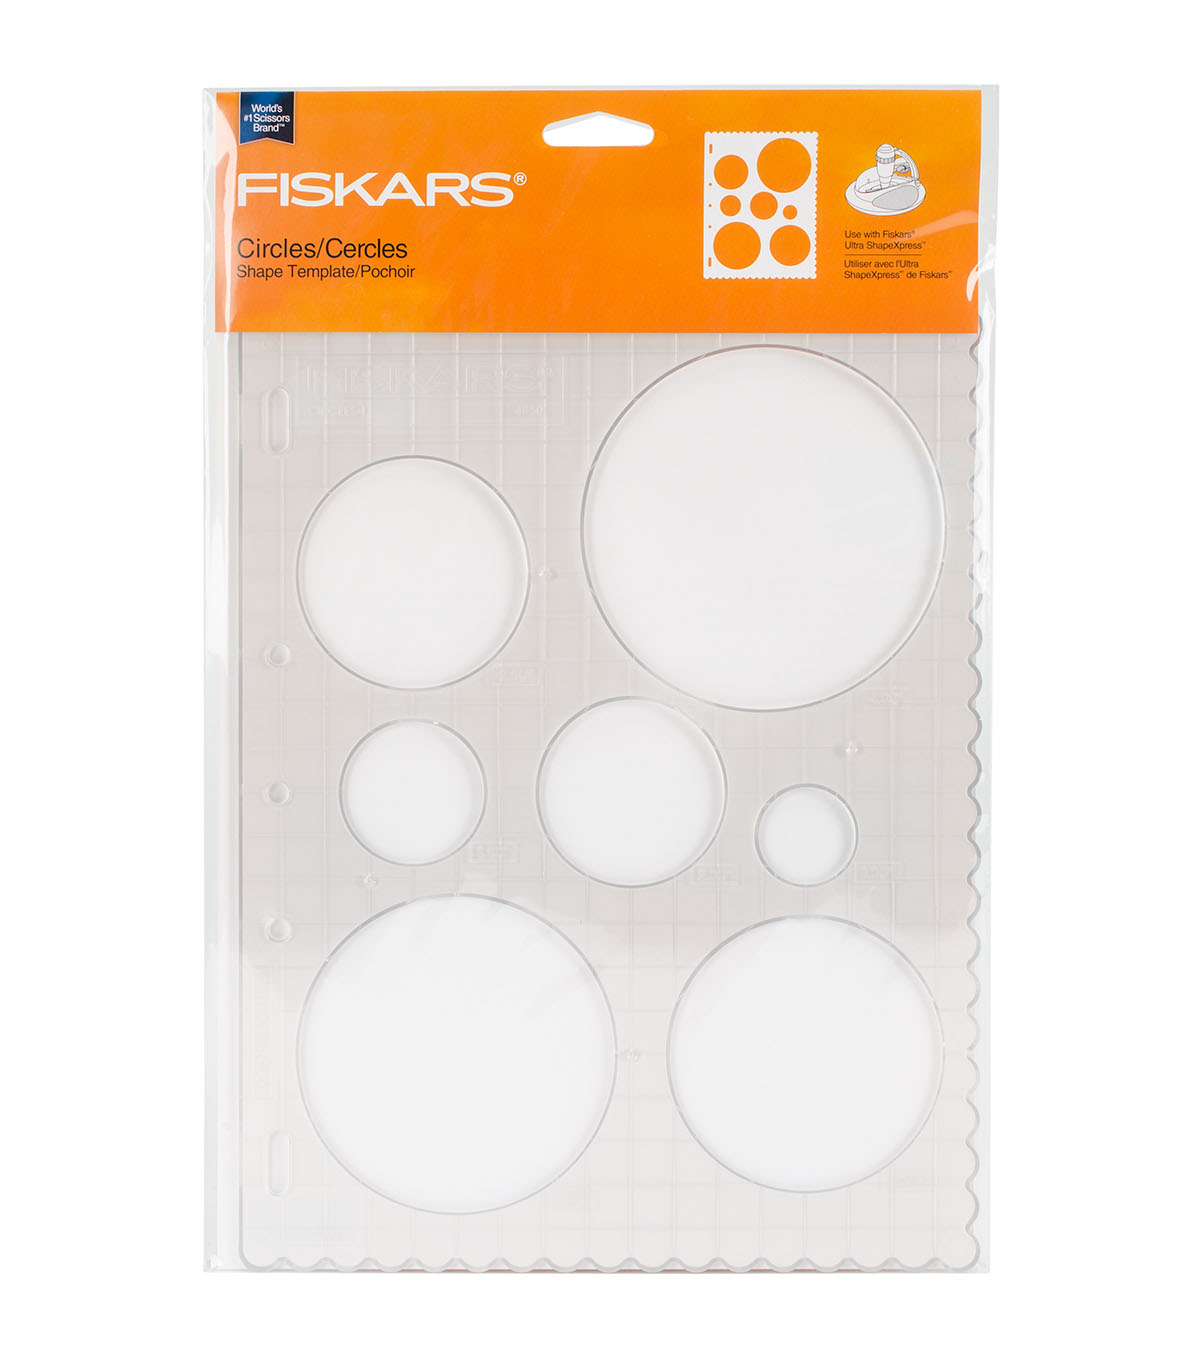 fiskars shapetemplates many designs joann